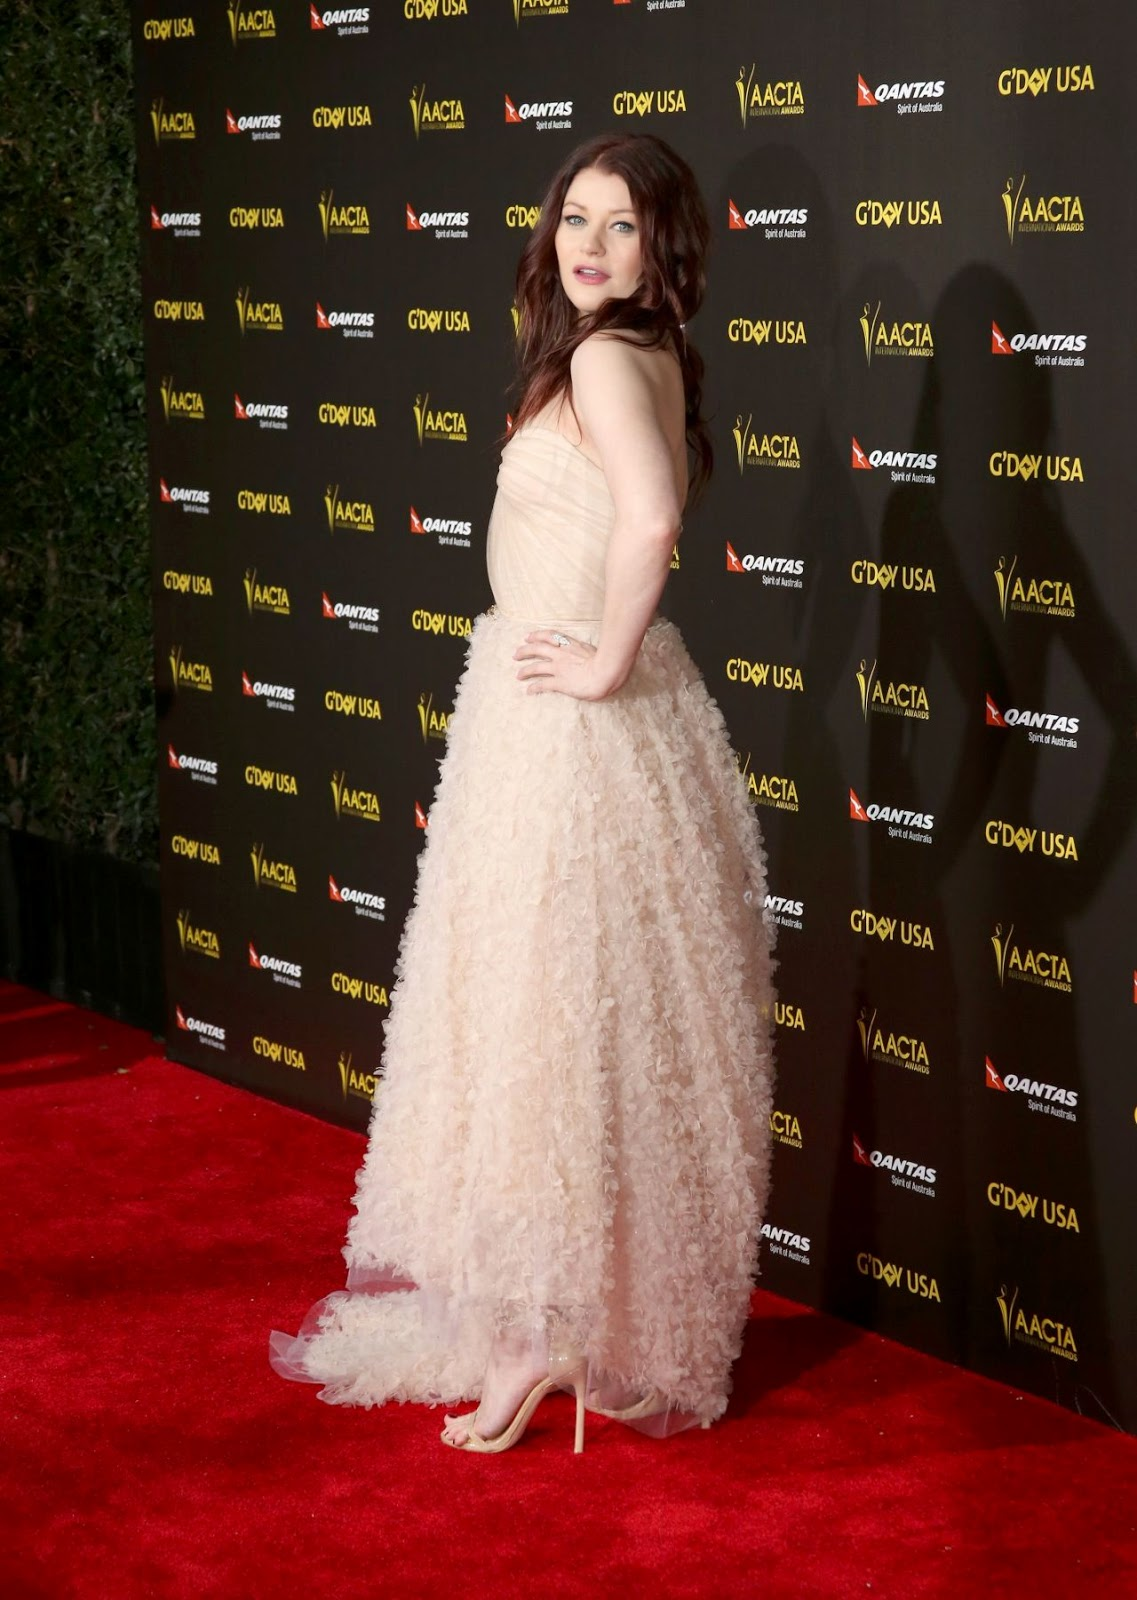 Emilie de Ravin at the G'Day USA Gala AACTA International Awards 2015 in LA